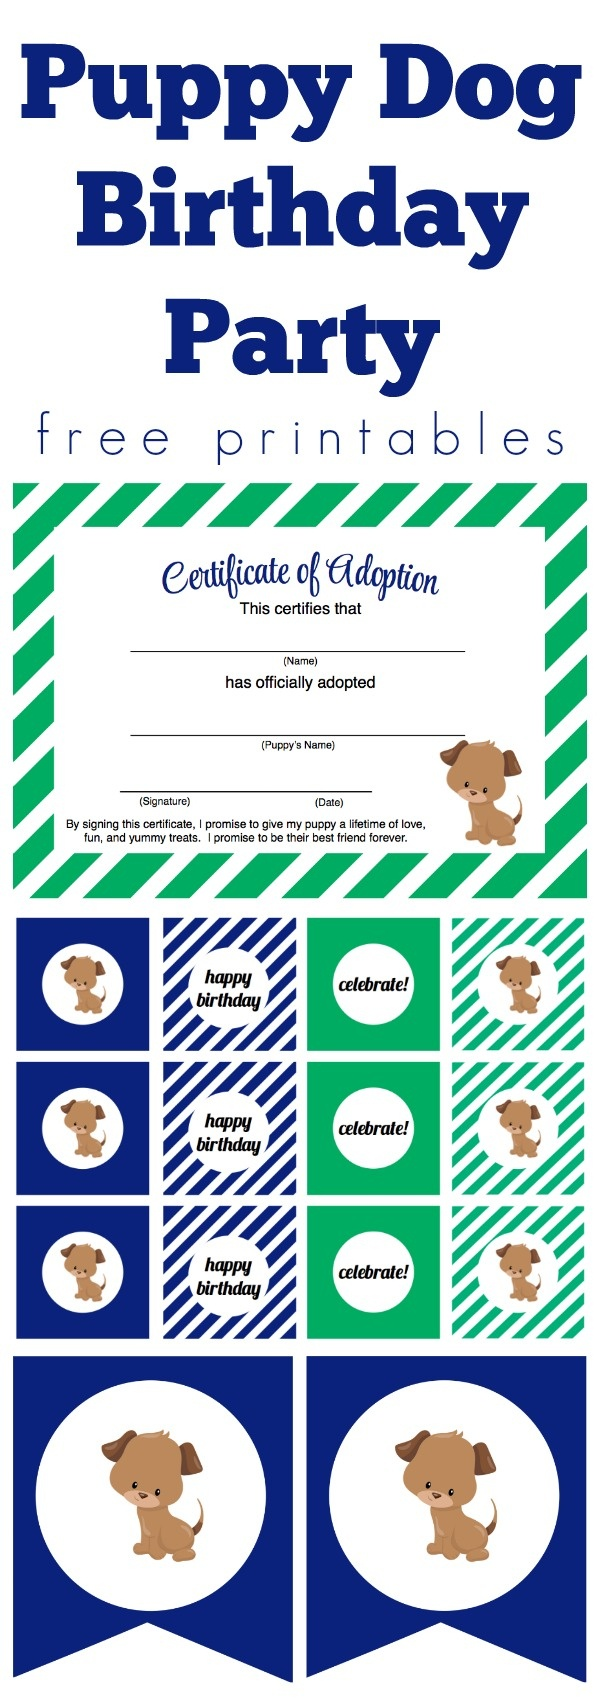 We Heart Parties: Free Printables Puppy Dog Party Free Printables - Dog Birthday Invitations Free Printable